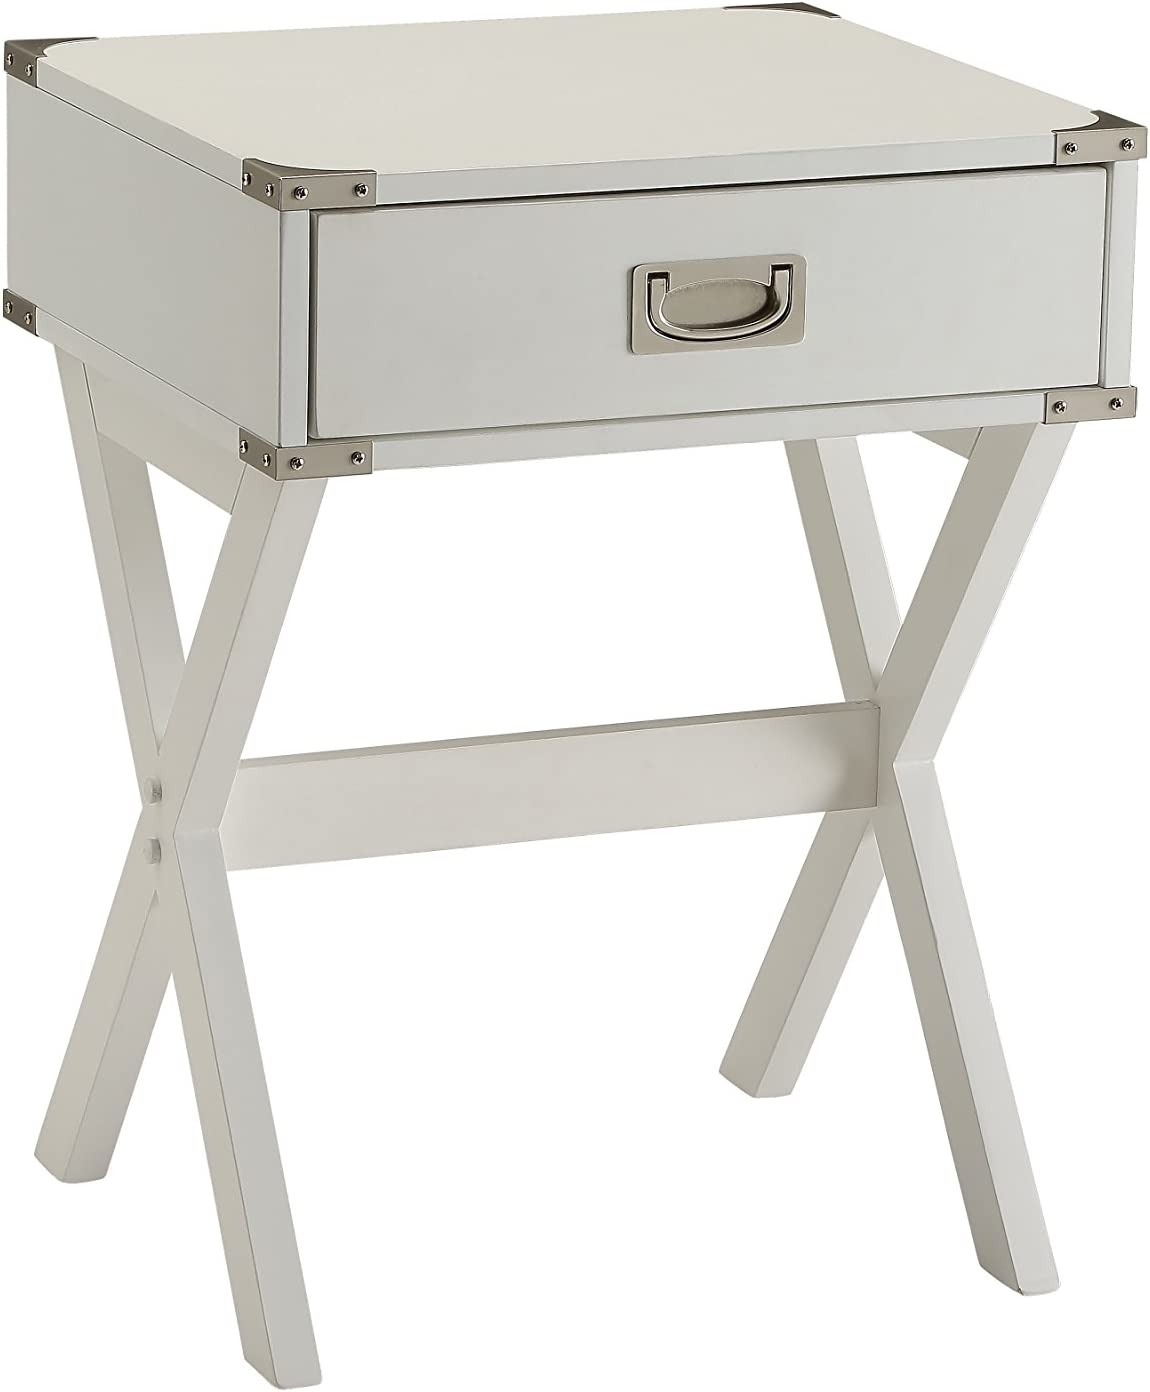 ACME Furniture 82824 Babs End Table, White, One Size